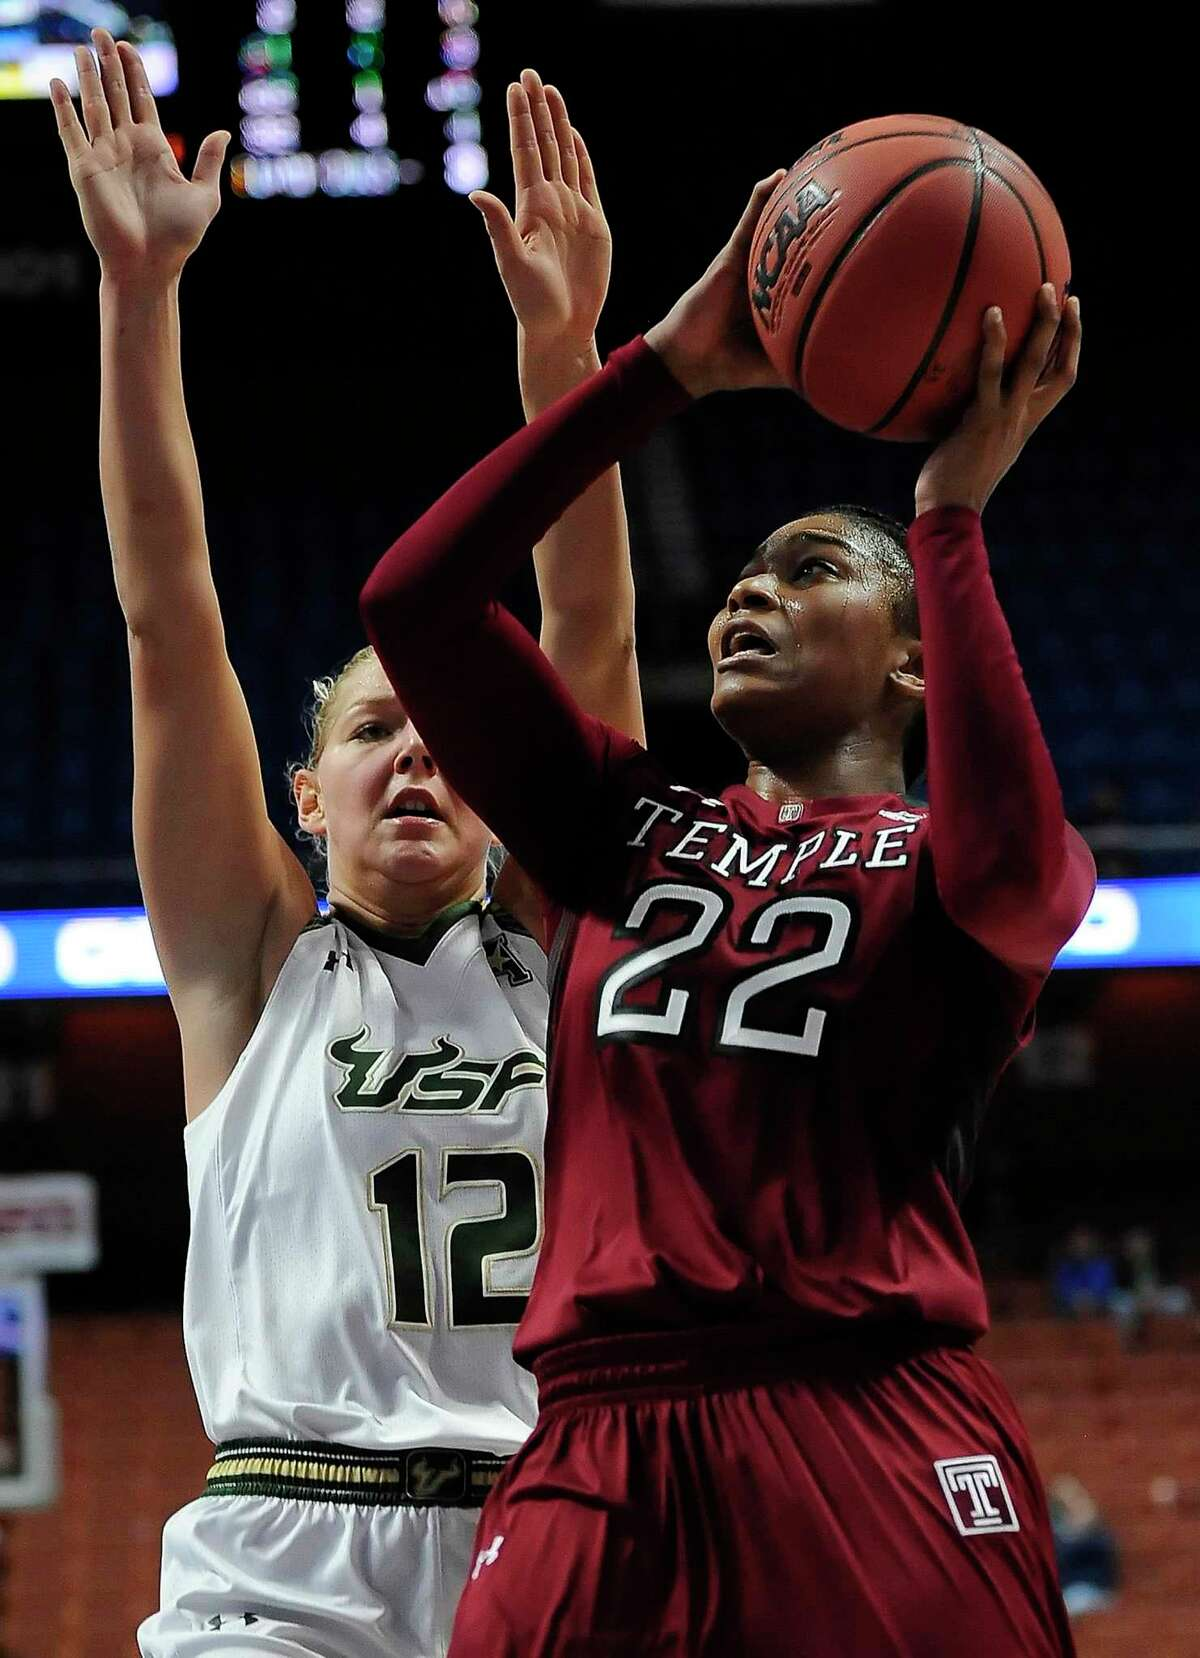 Temple's Tanaya Atkinson shoots as South Florida's Maria Jespersen, left, defends during the second half of an NCAA college basketball game in the American Athletic Conference tournament semifinals at Mohegan Sun Arena, Sunday, March 6, 2016, in Uncasville, Conn. South Florida won 64-46. (AP Photo/Jessica Hill)